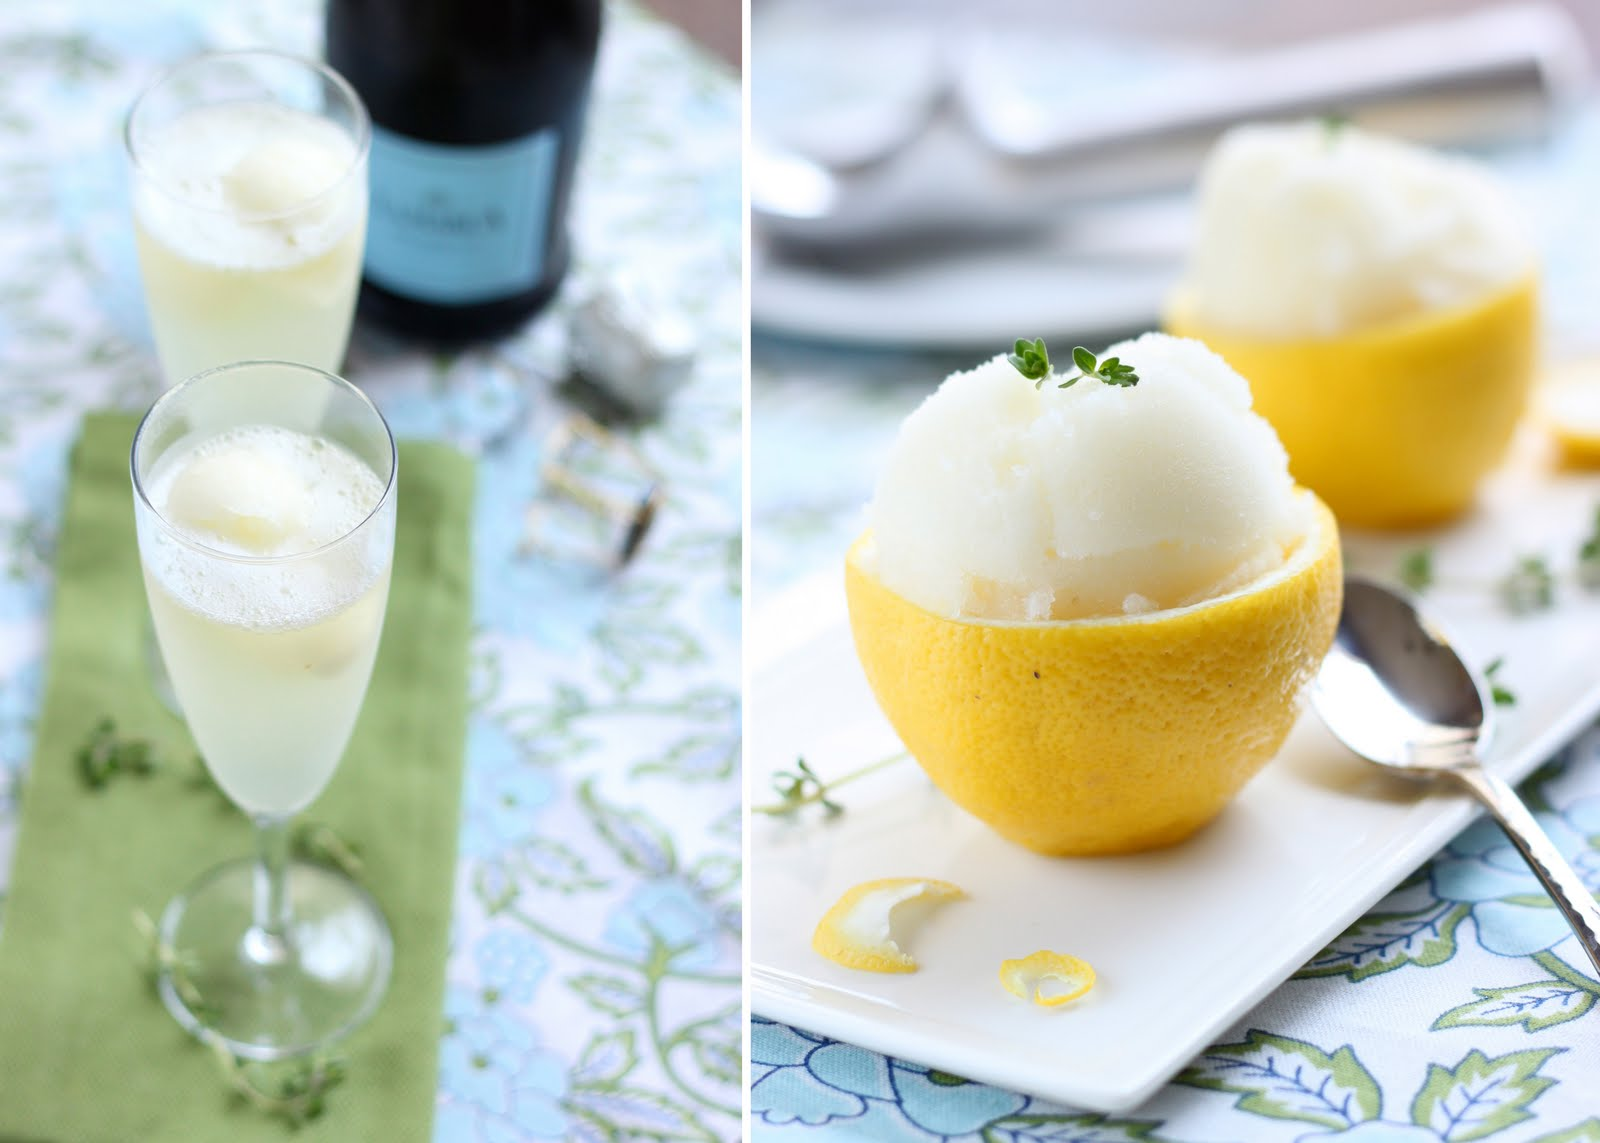 Prosecco+and+Lemon+Cups+4.jpg